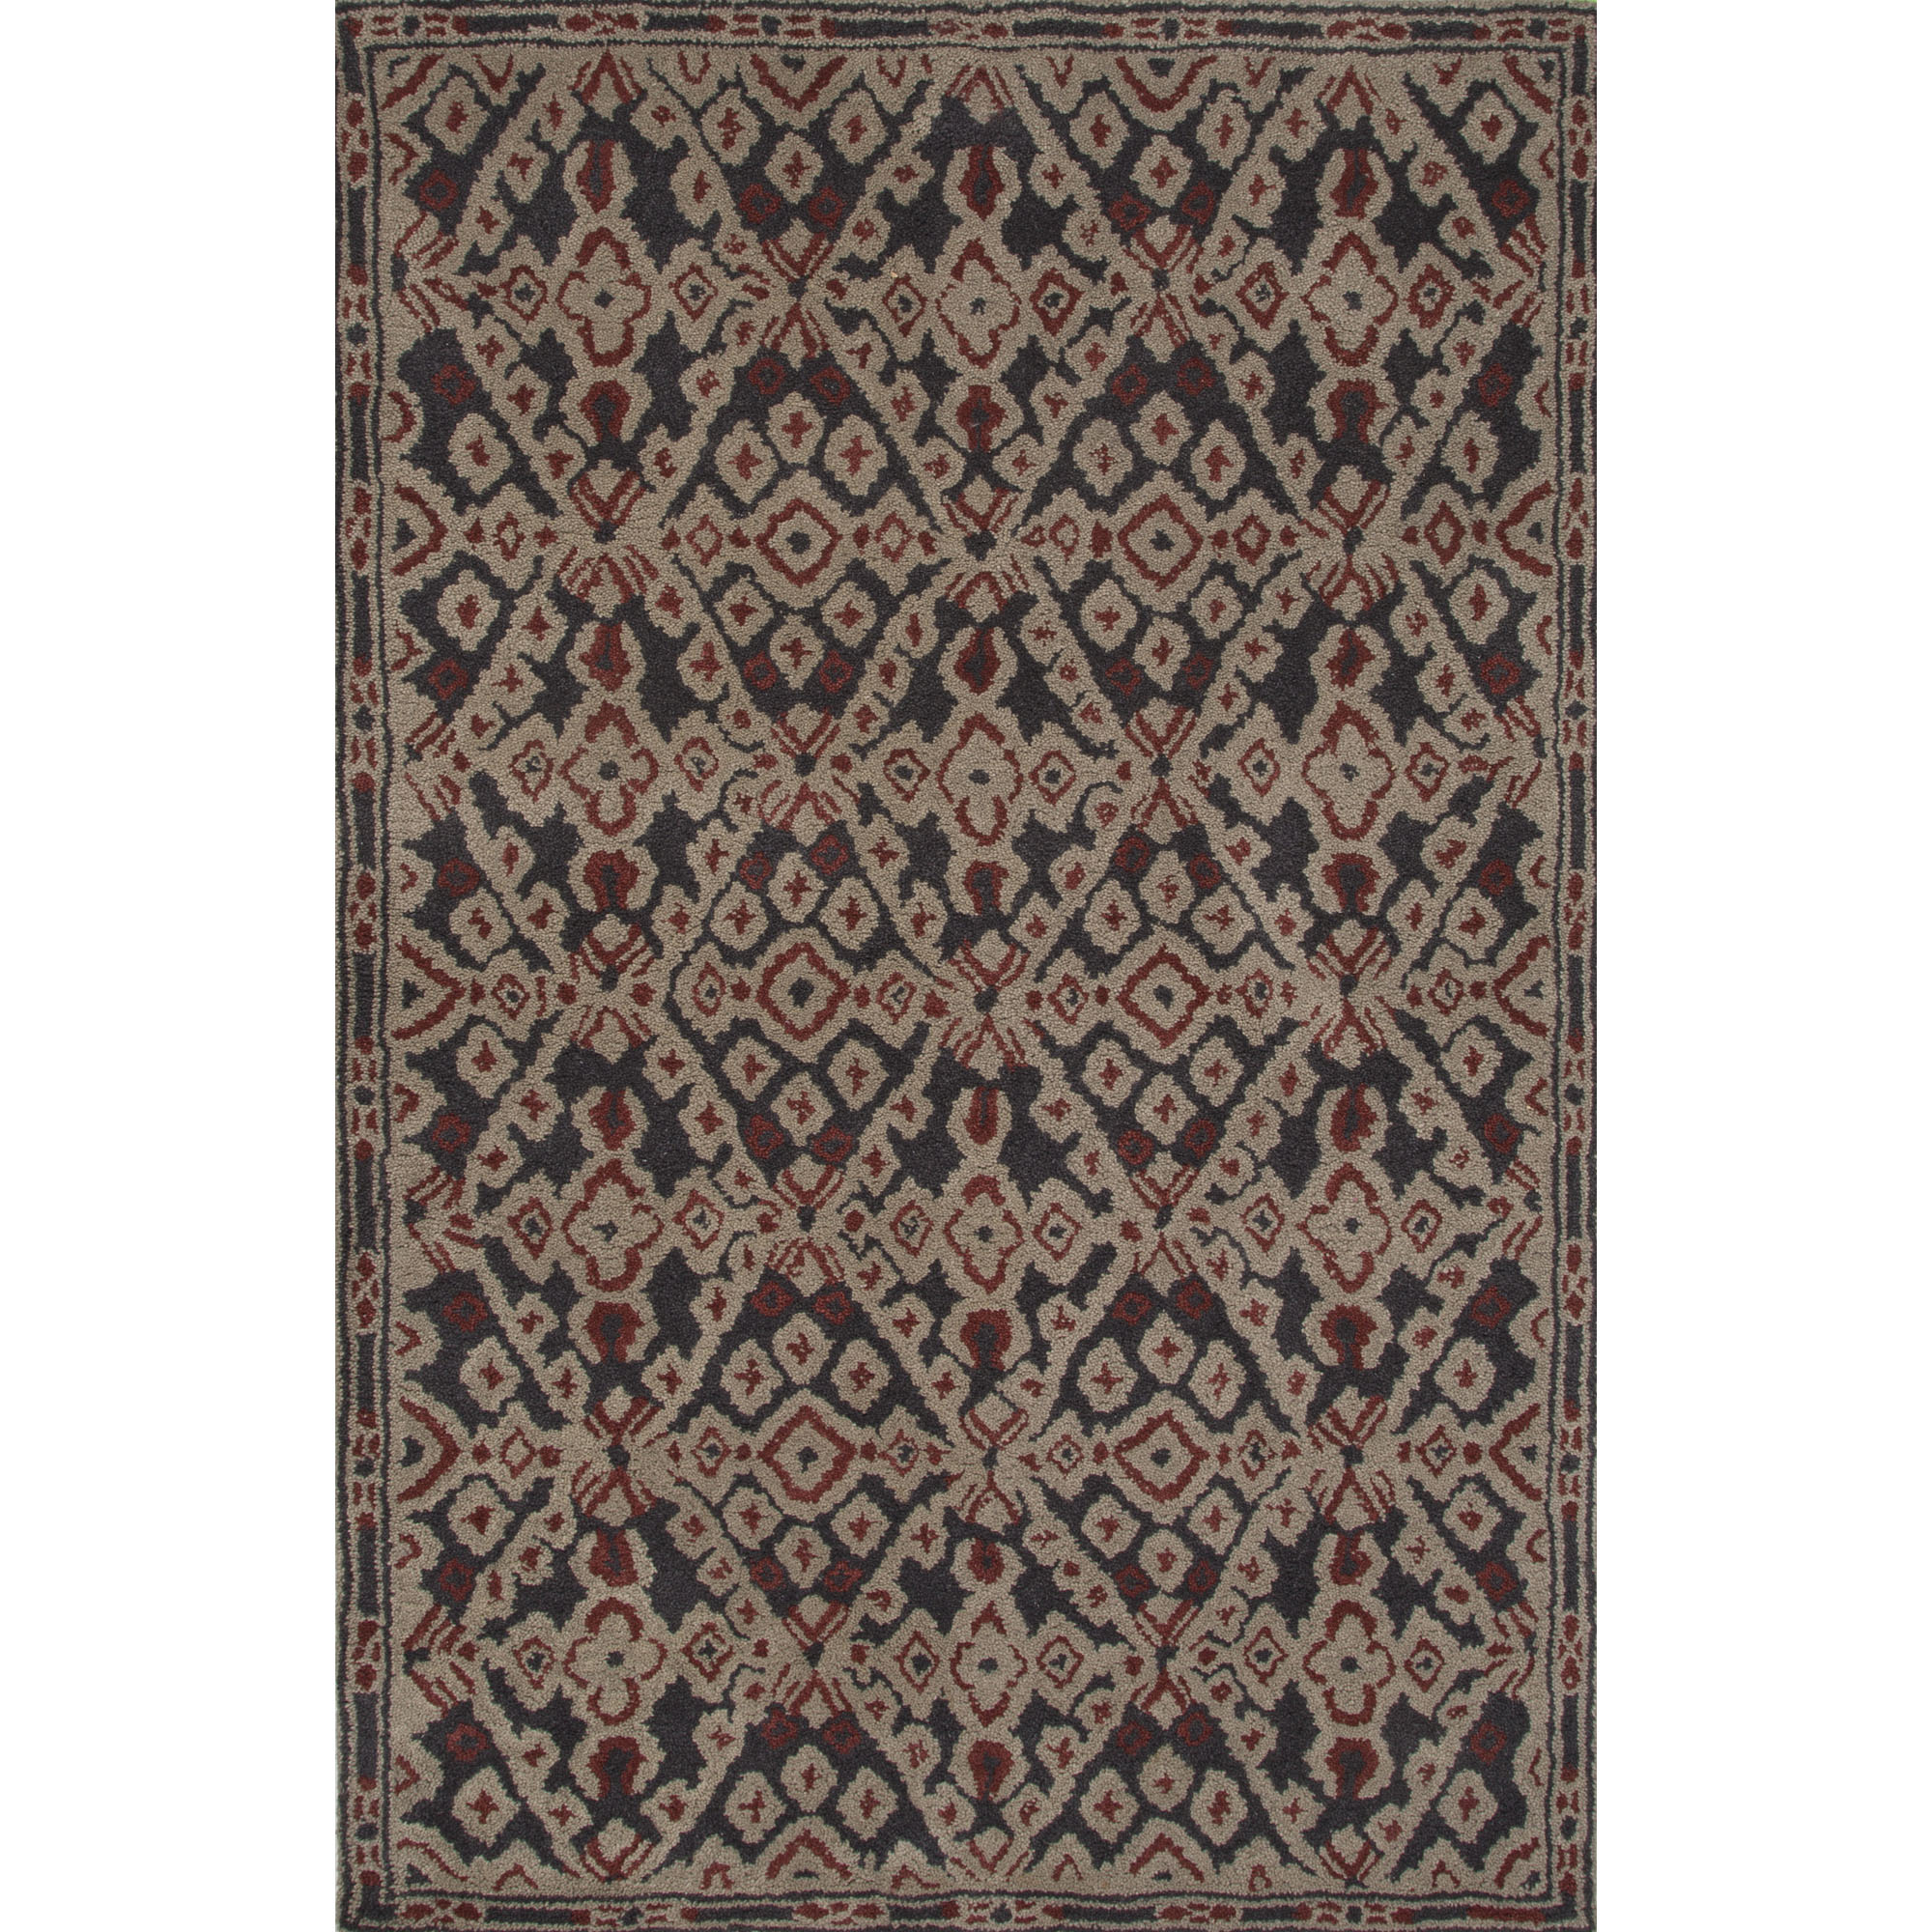 JAIPUR Rugs Traditions Made Modern Tufted 5 x 8 Rug - Item Number: RUG121360